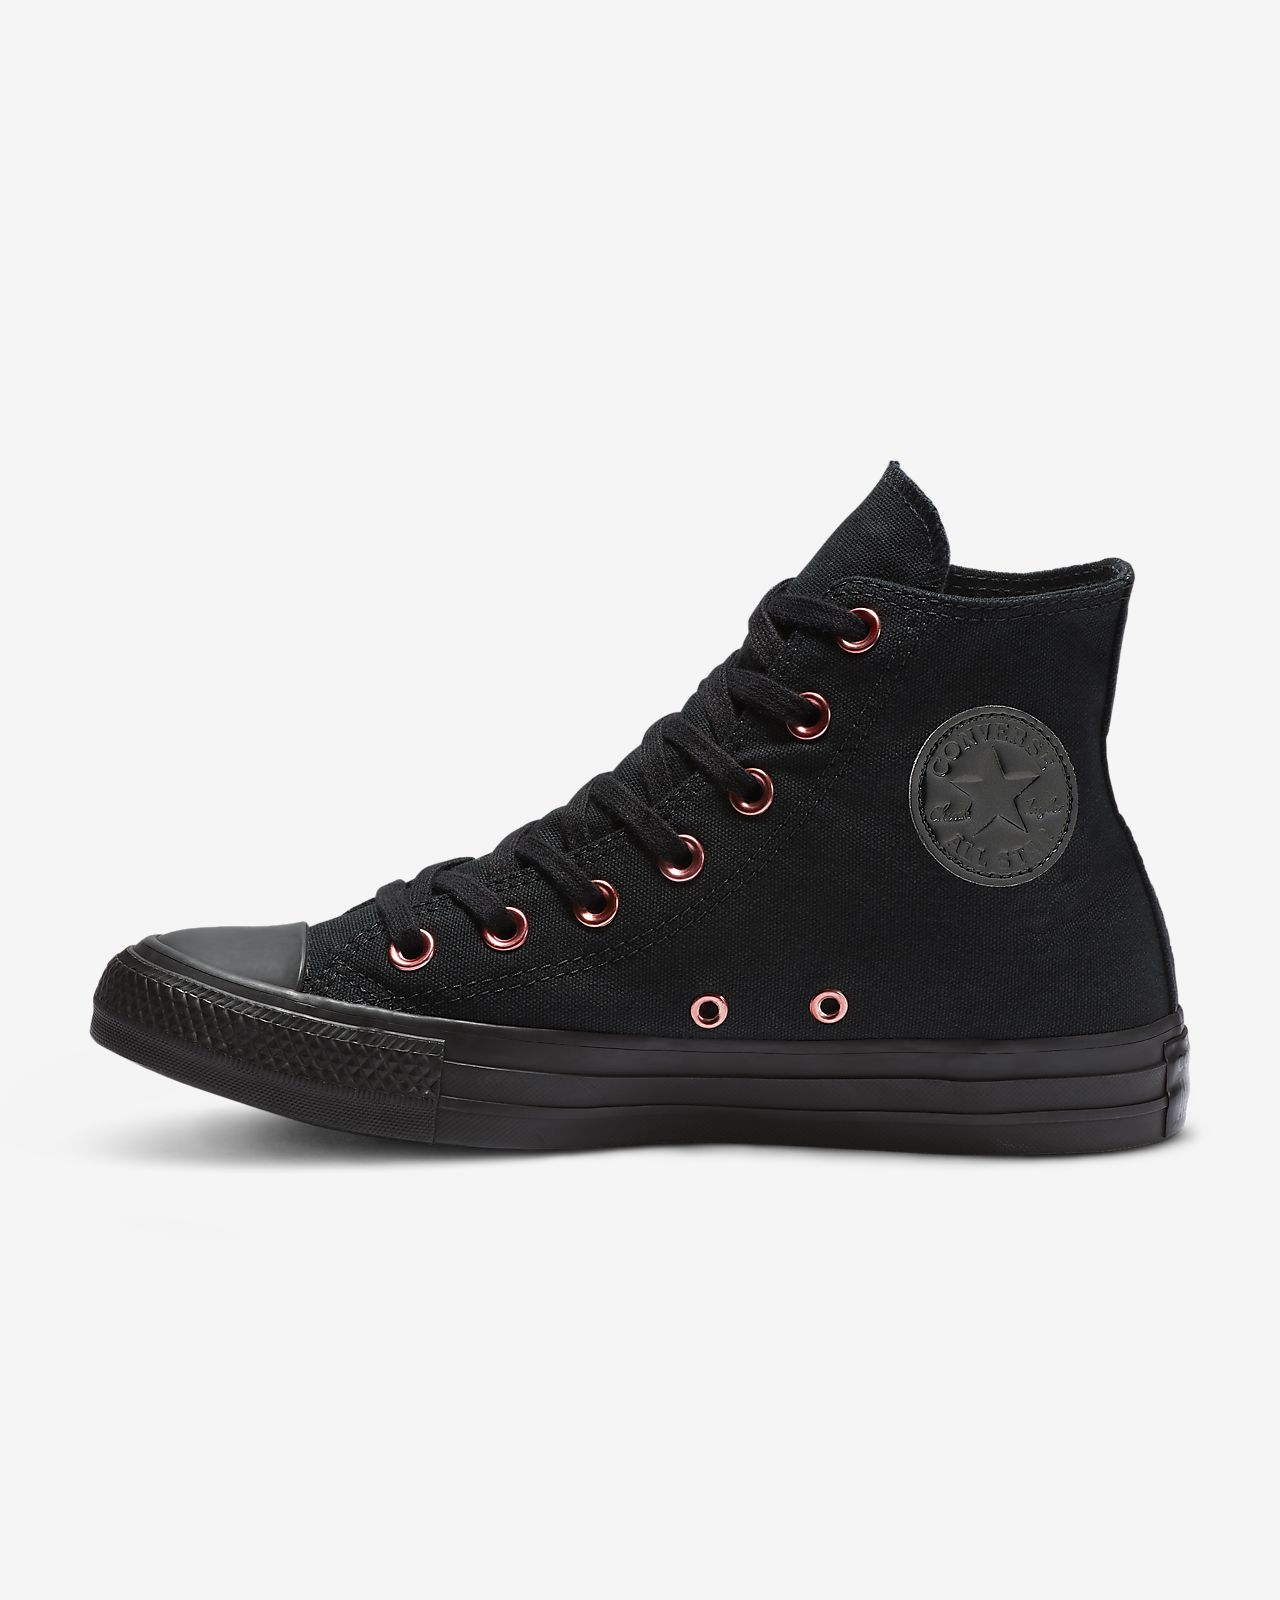 Chuck Taylor All Star Hearts High Top Unisex Shoe